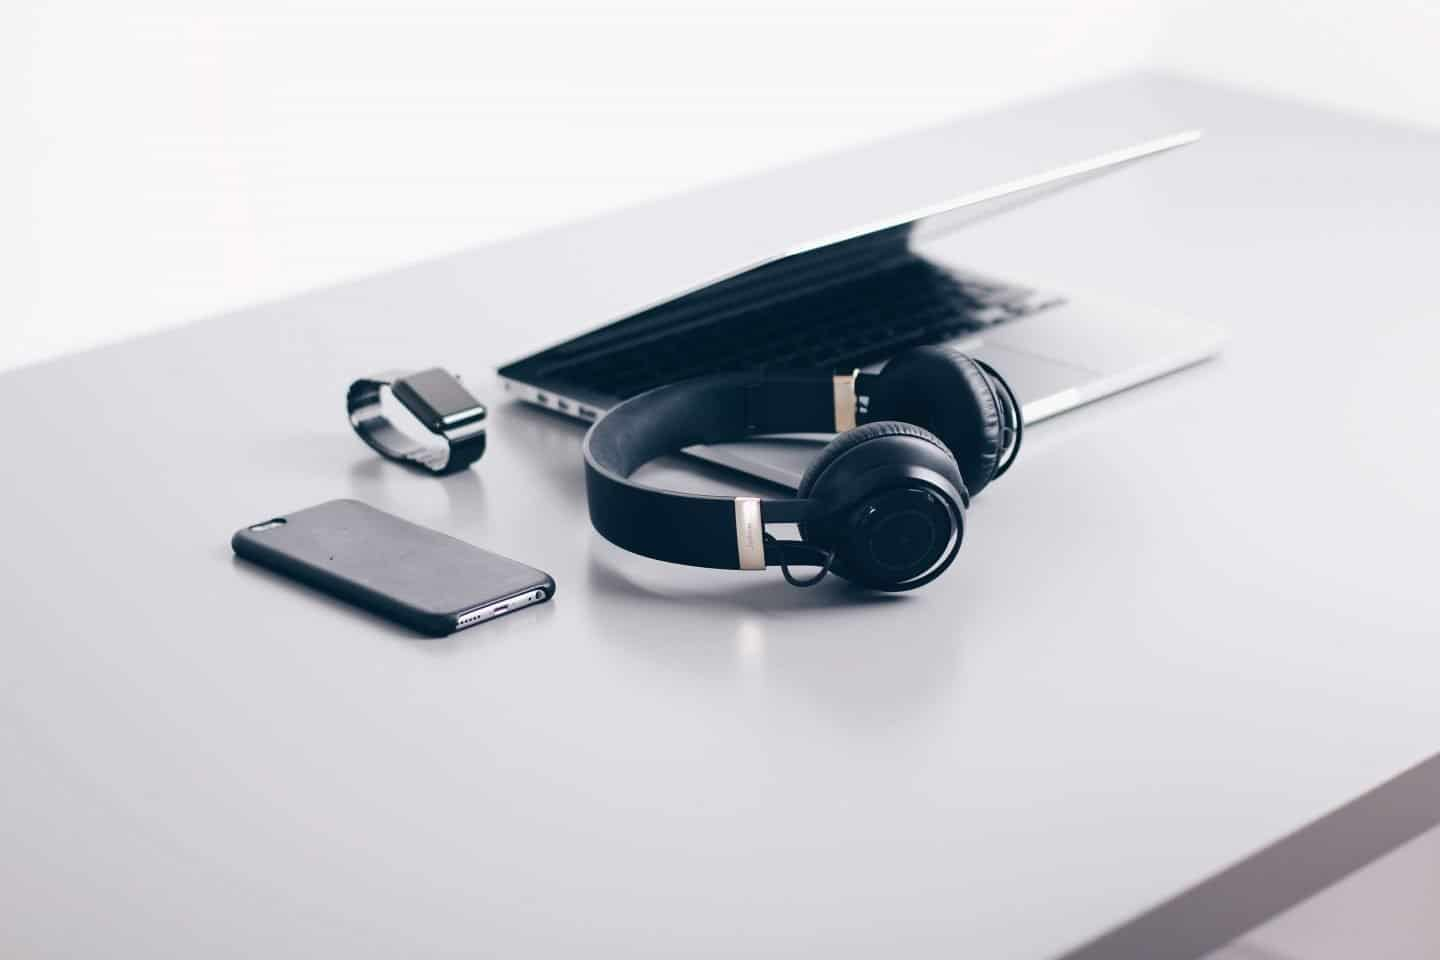 Decluttering Your House of Tech And Gadgets